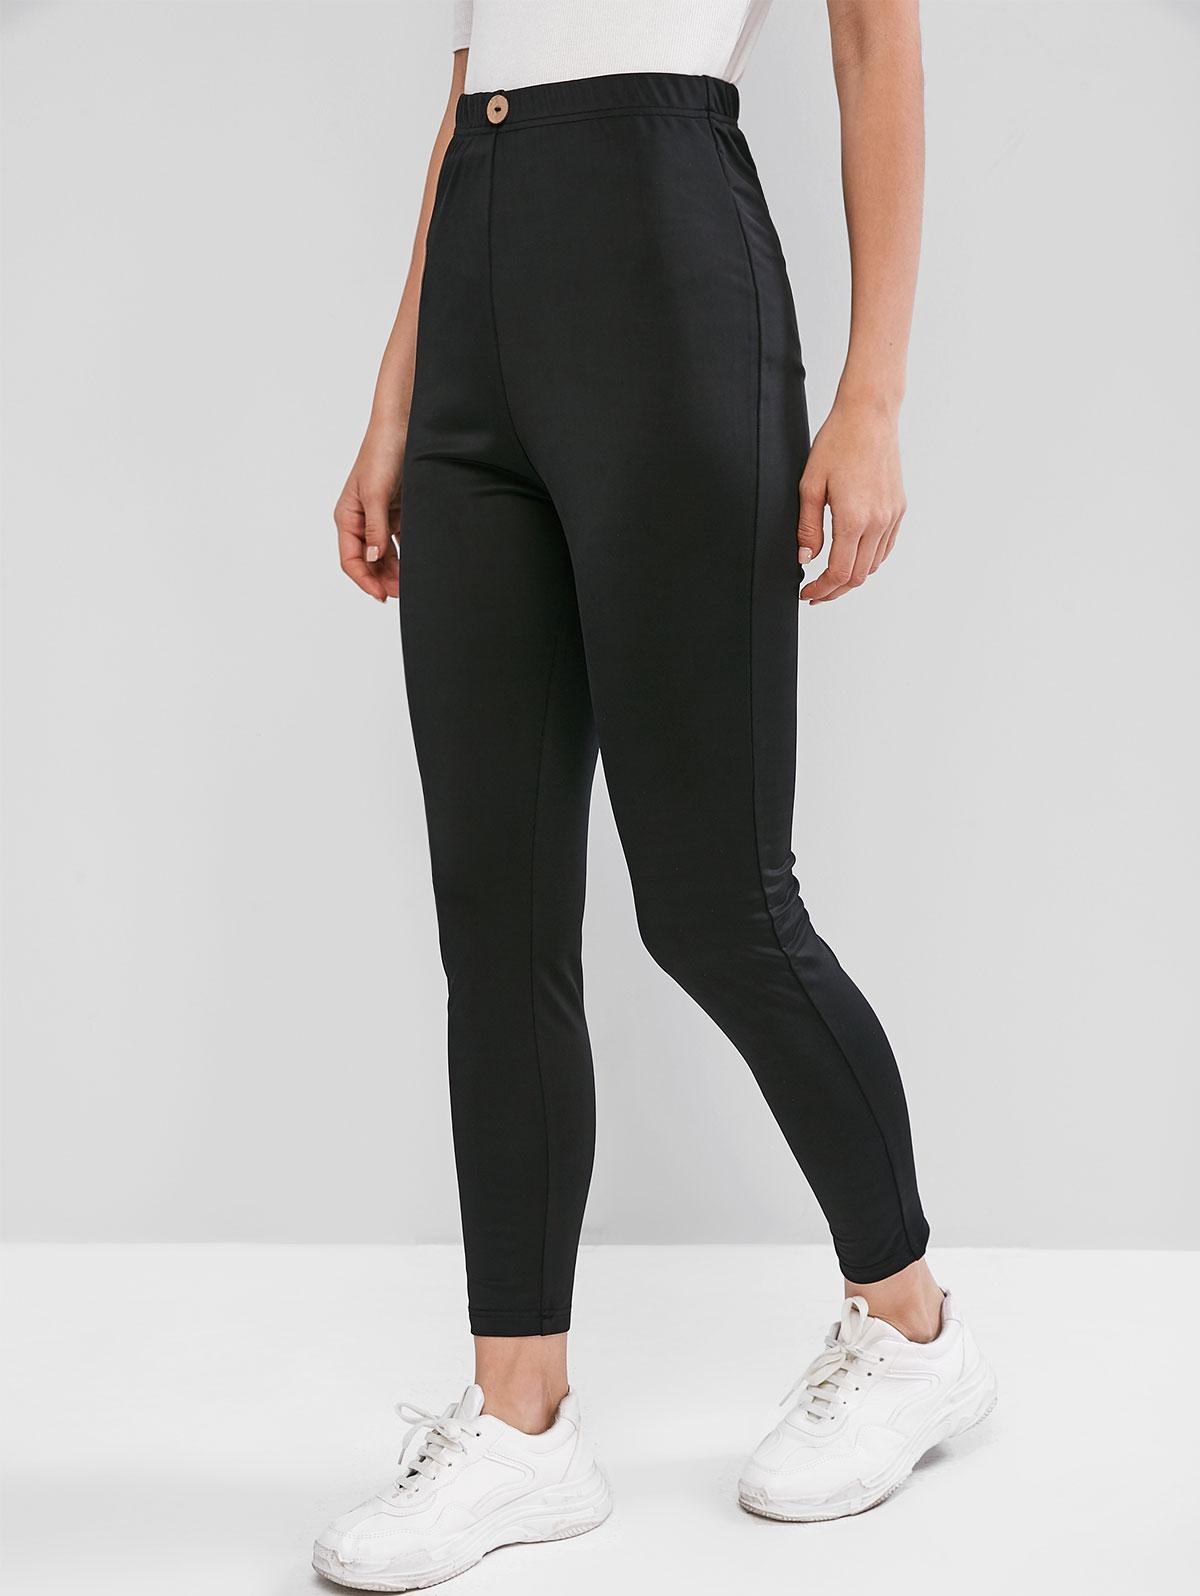 ZAFUL High Waist Mock Button Solid Leggings